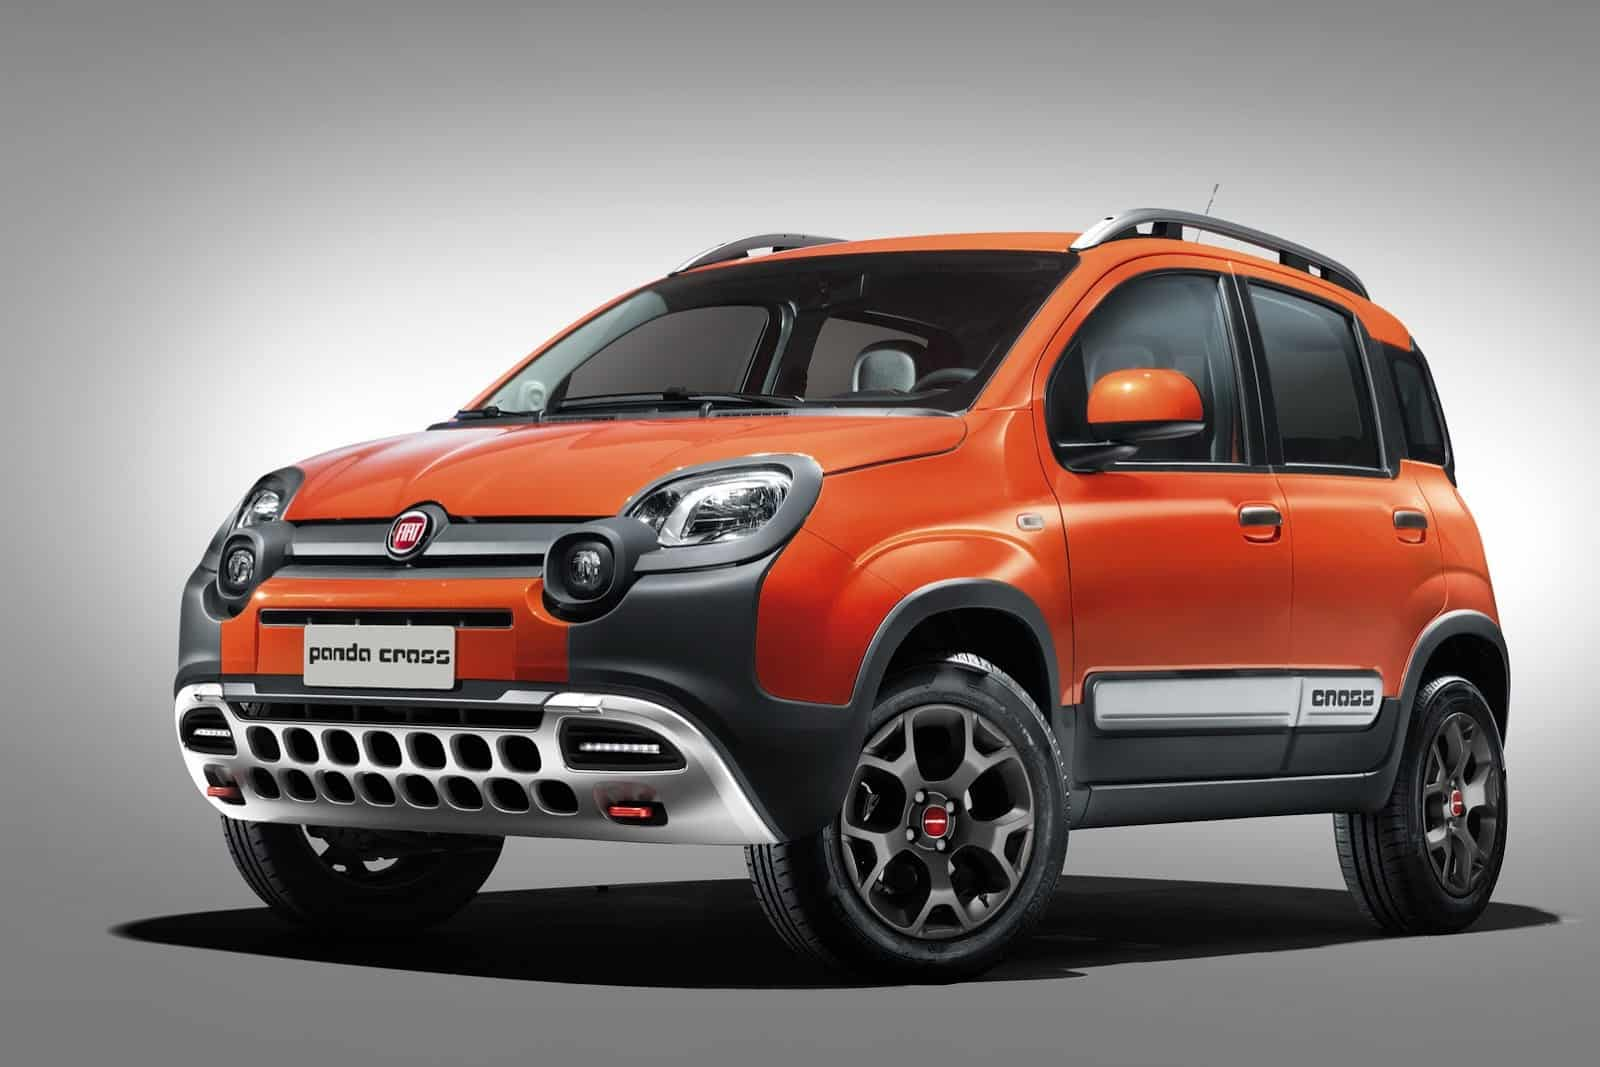 Fiat Panda : la version Cross fait son come-back